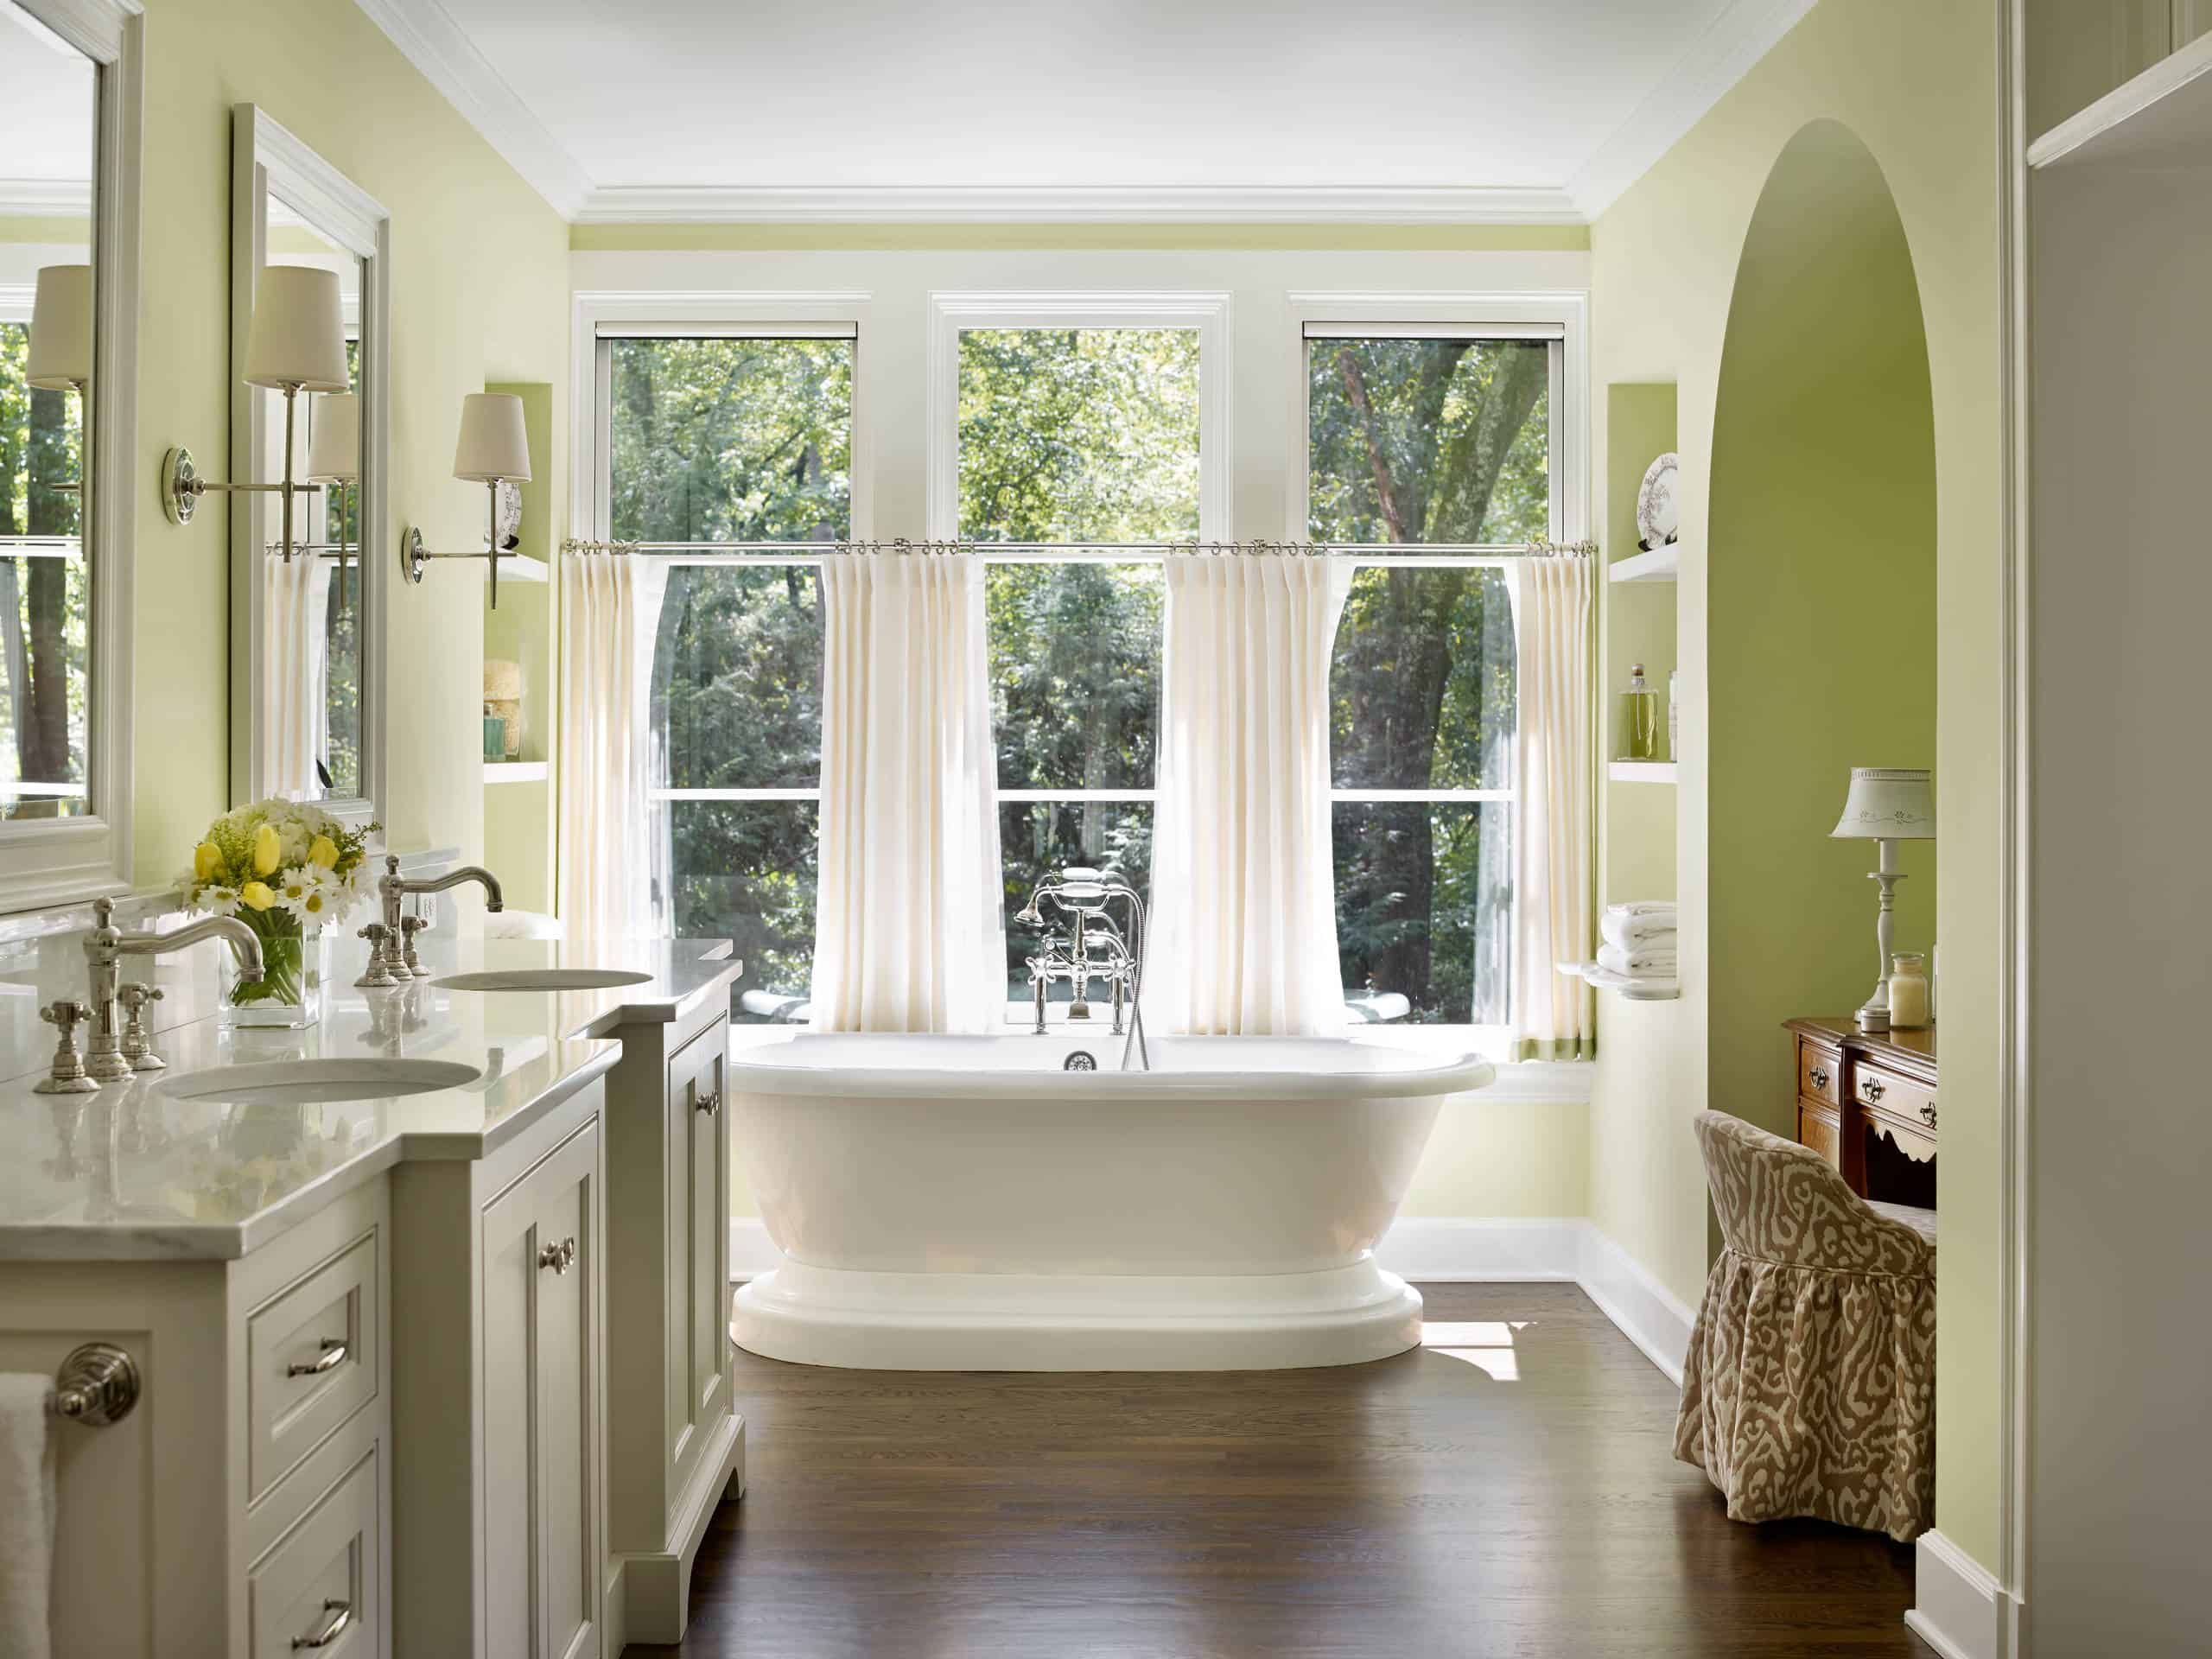 bathroom curtains for windows - Bathroom Window